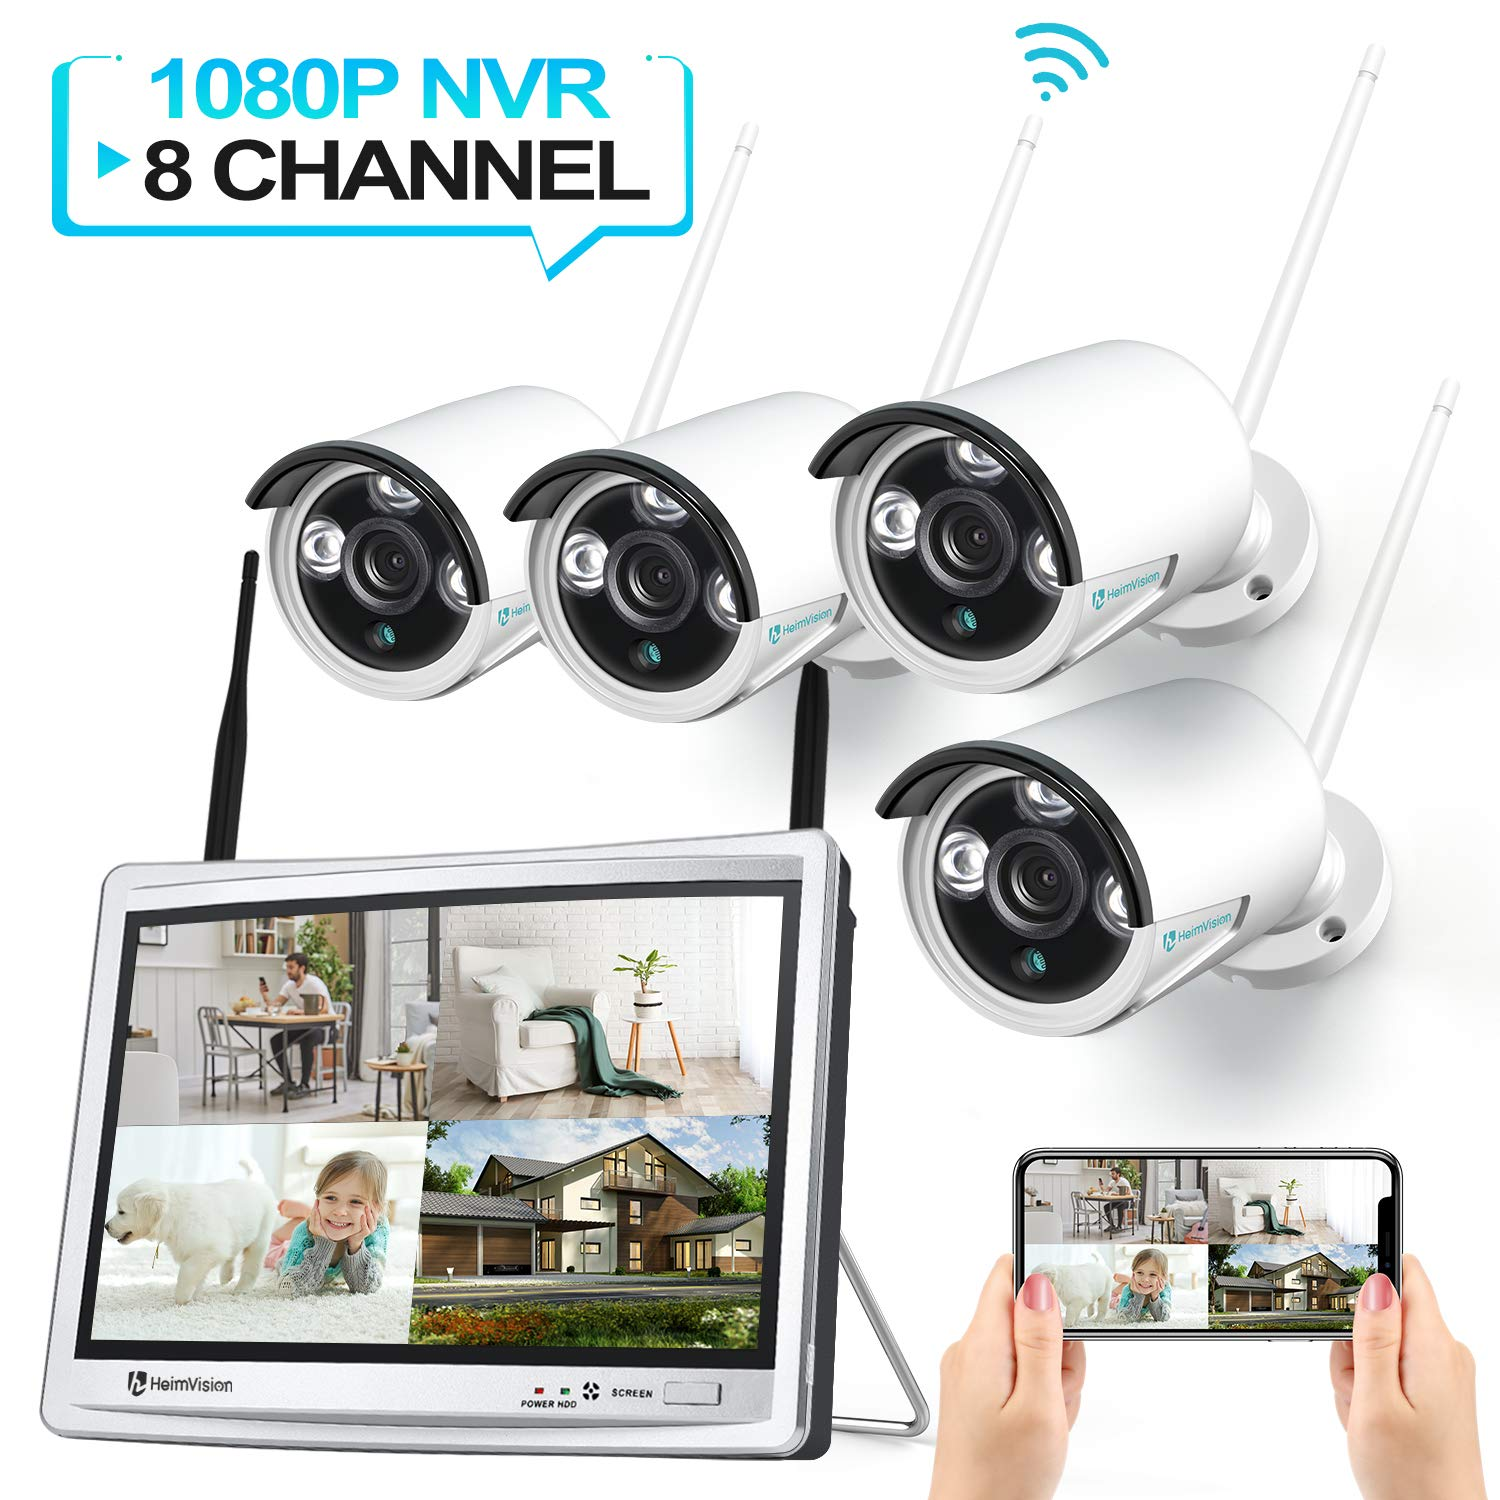 HeimVision HM243 1080P Wireless Security Camera System with 12 inch LCD Monitor, 8CH NVR 4Pcs Outdoor/Indoor WiFi Surveillance Cameras with Night Vision, Waterproof, Motion Detection, No Hard Drive